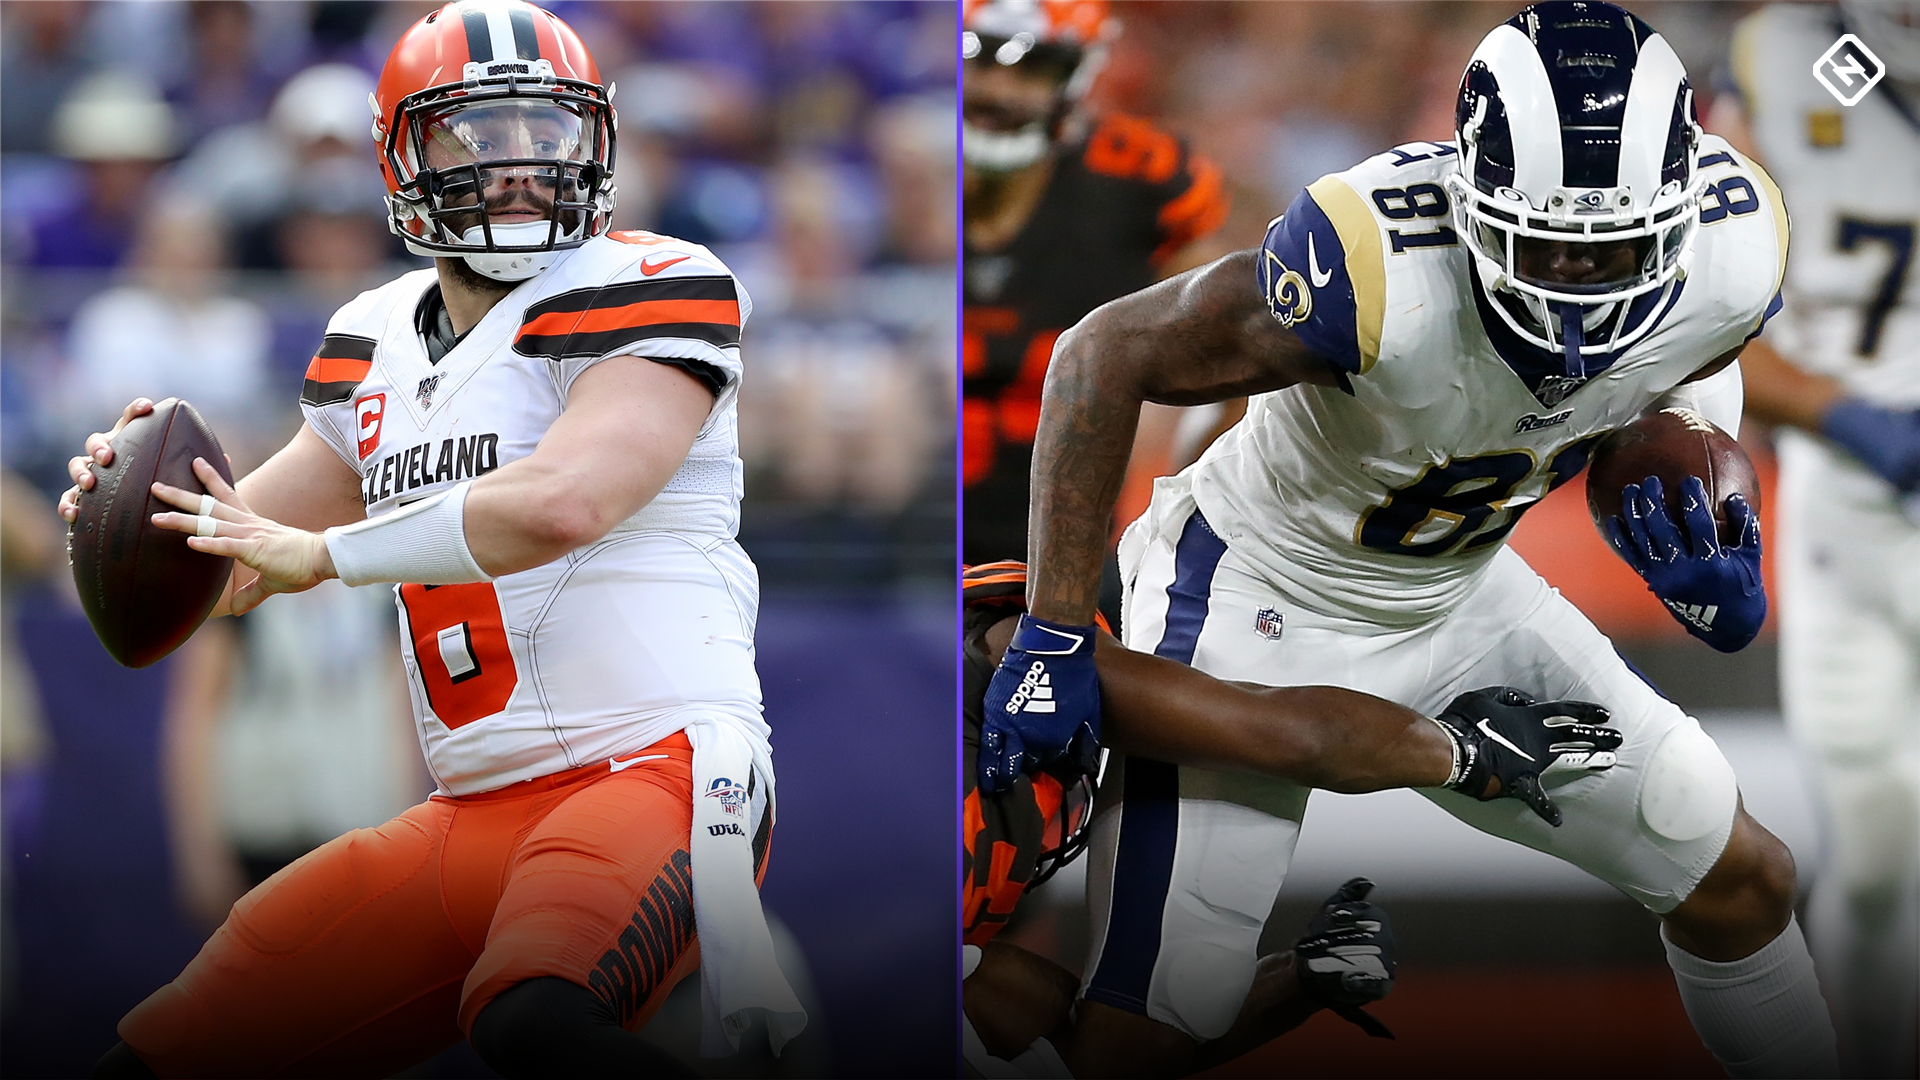 Week 6 Fantasy Busts: Baker Mayfield to keep struggling, Gerald Everett a risk